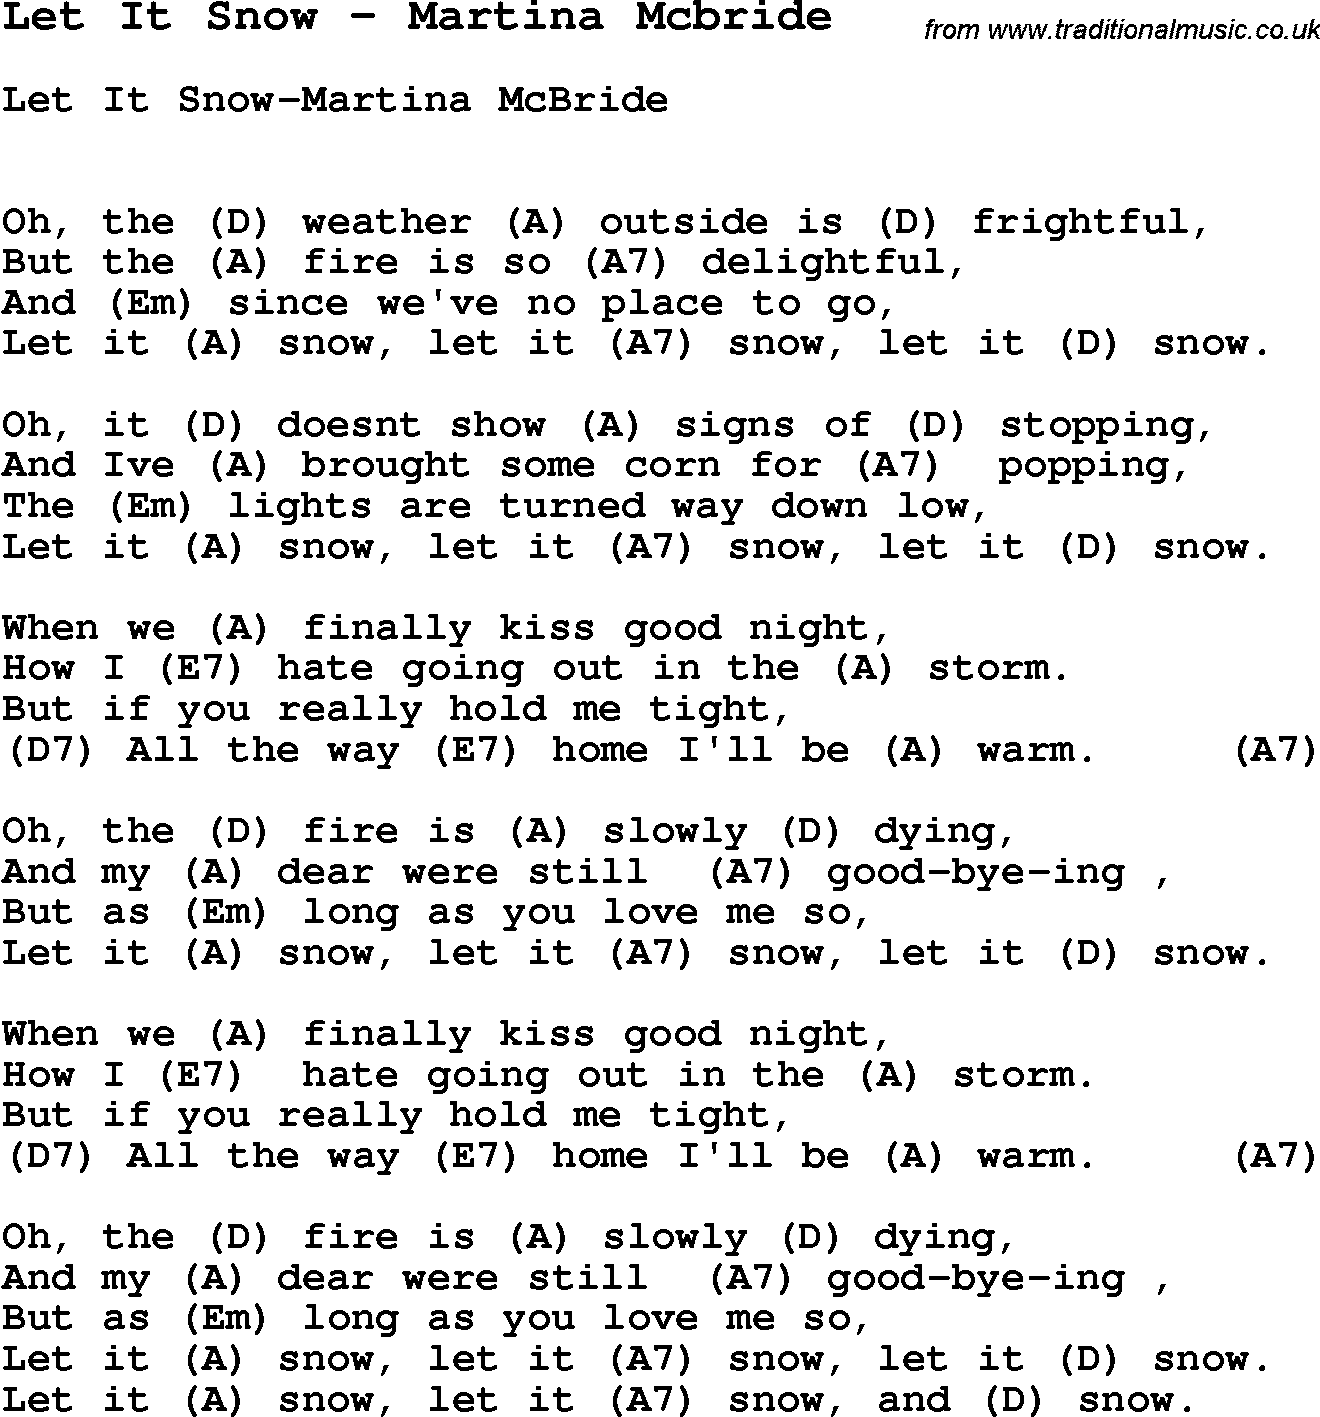 Song let it snow by martina mcbride with lyrics for vocal song let it snow by martina mcbride with lyrics for vocal performance and accompaniment chords hexwebz Gallery